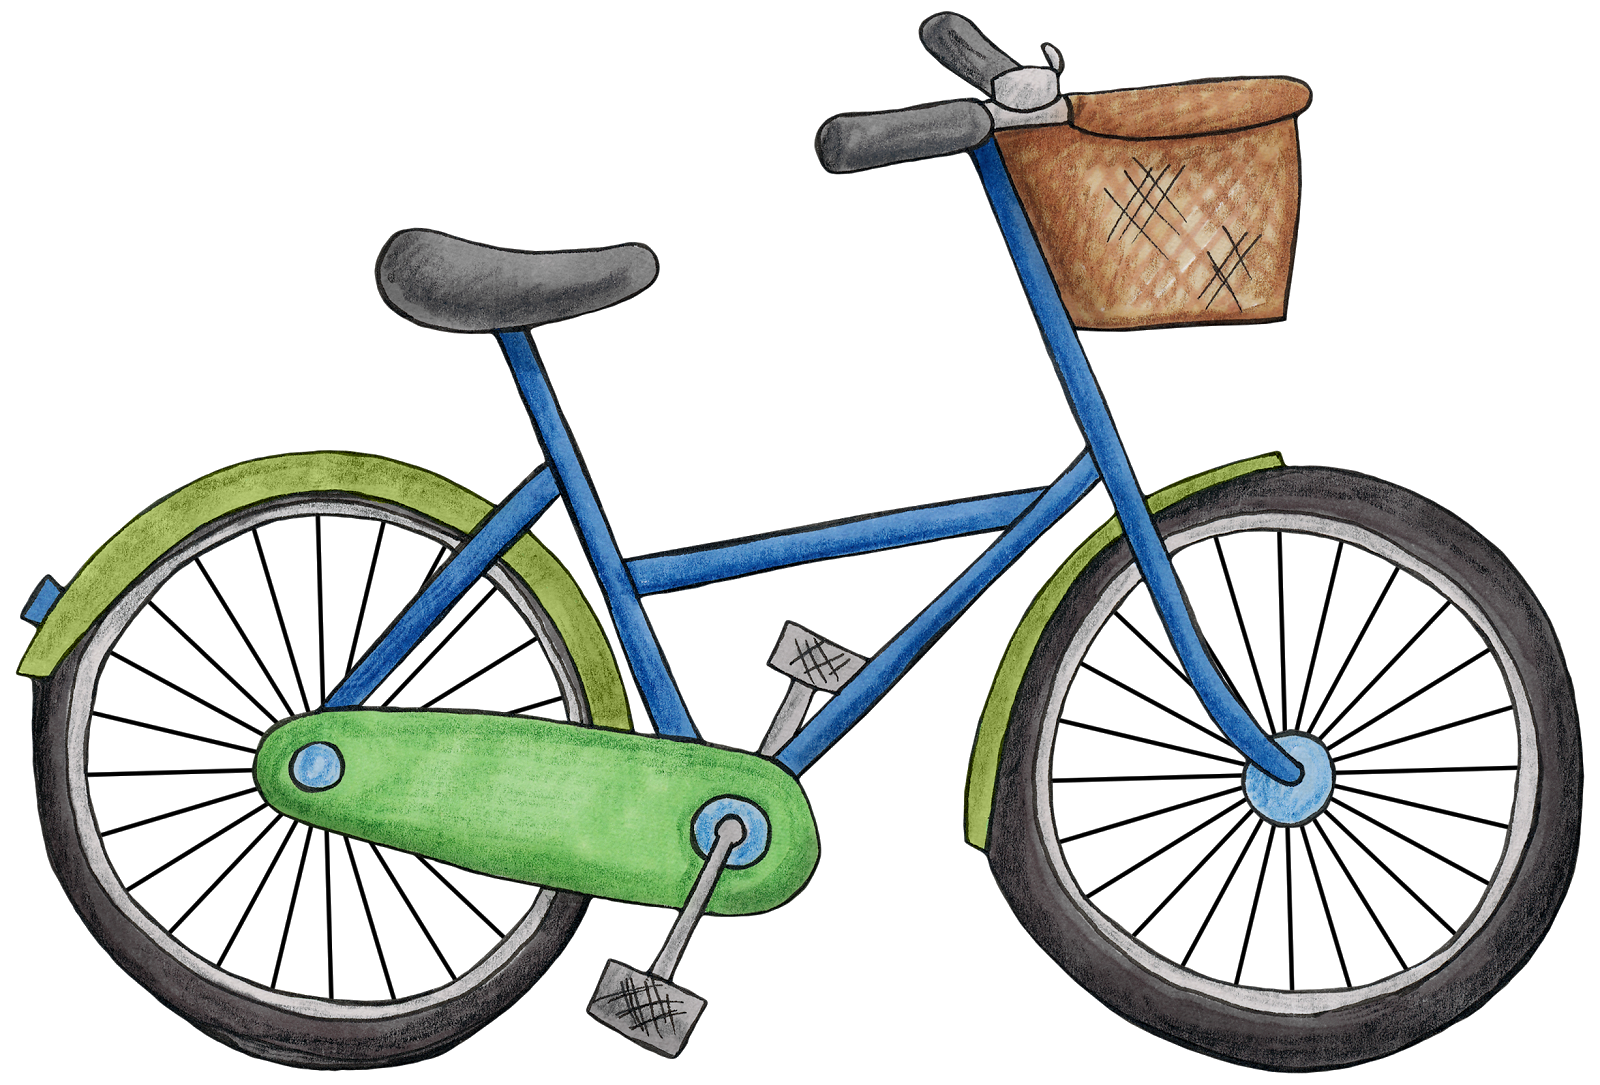 Bike clipart. Bicycle png images free